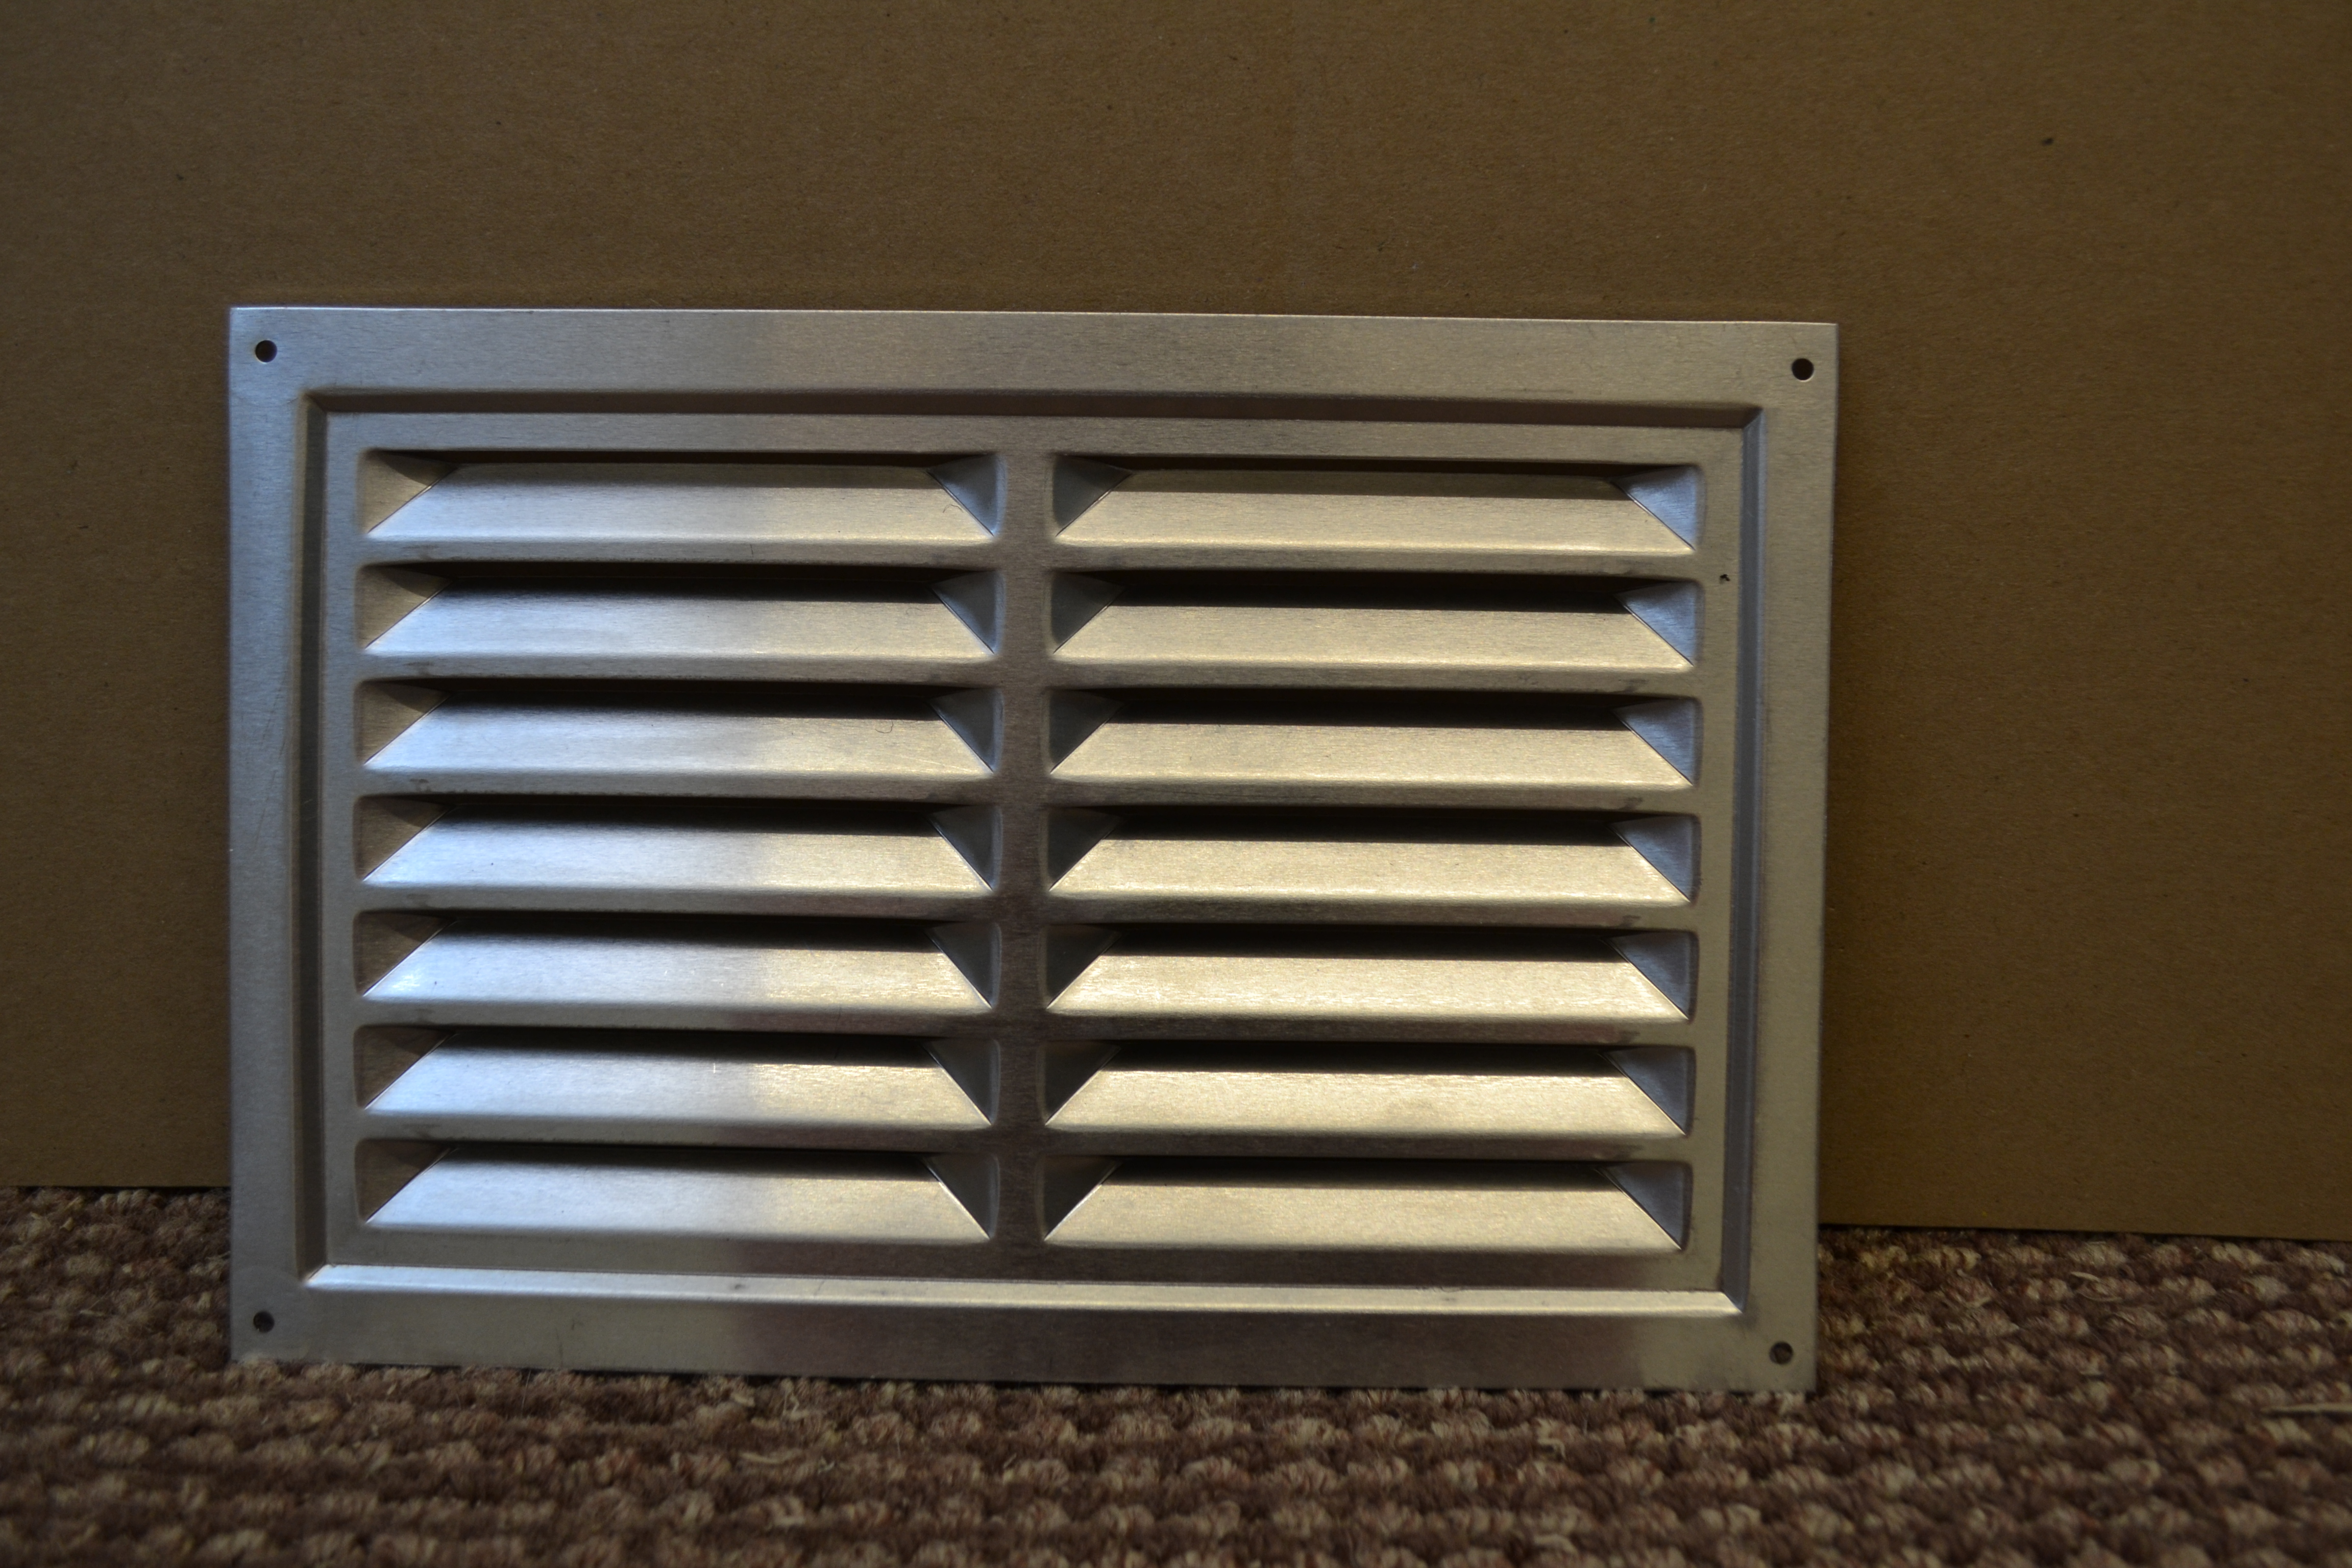 steel warm air heating and ventilation grilles | kenworth h&v